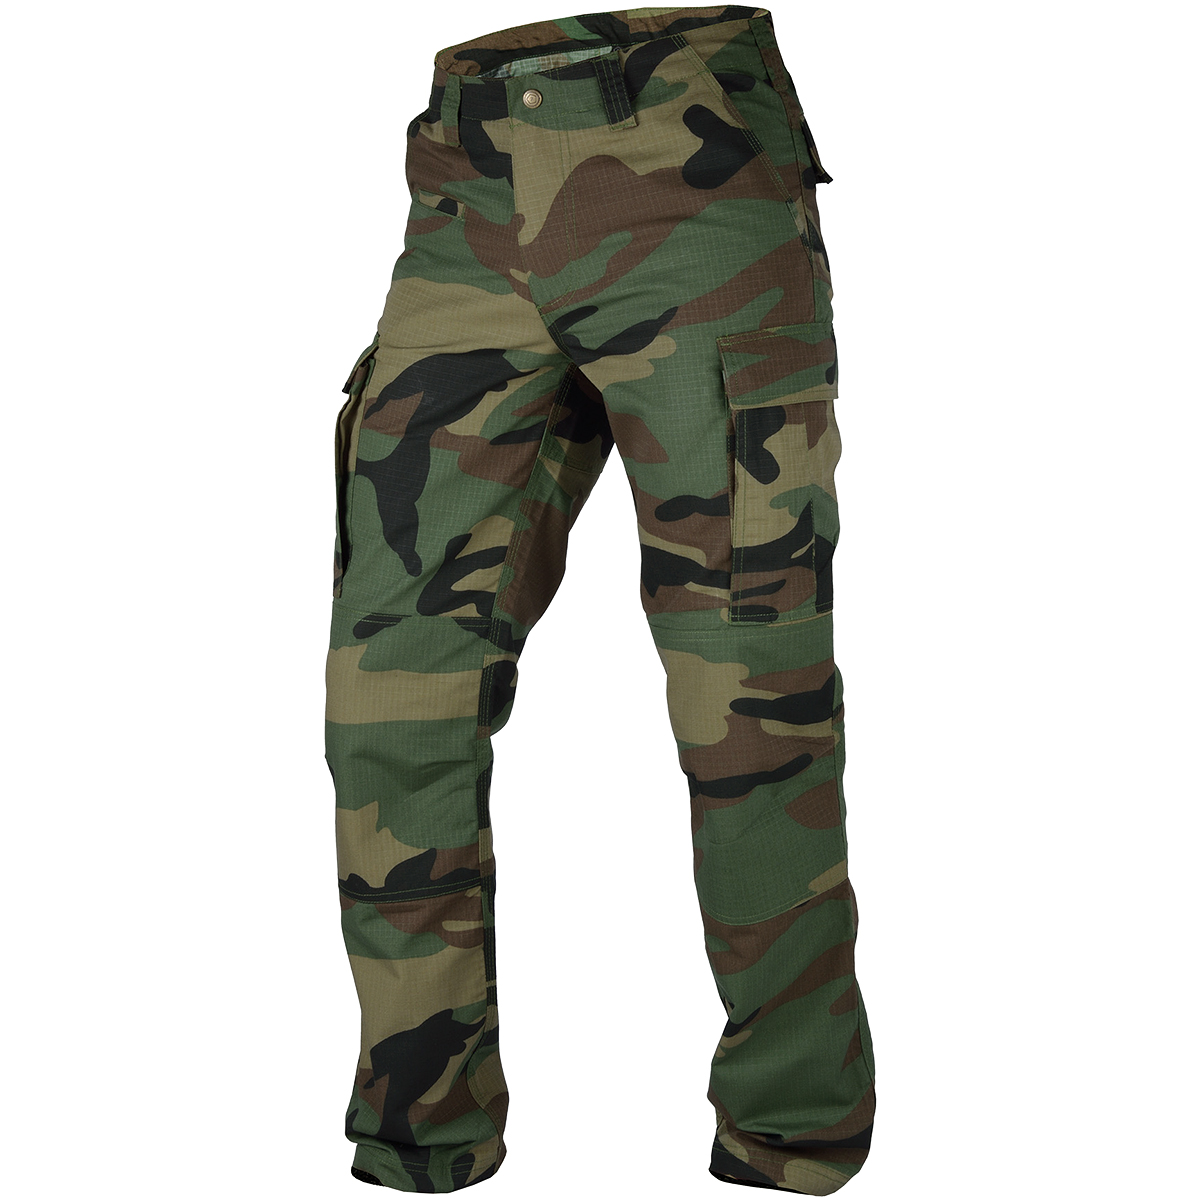 2af43e8d60681 Details about PENTAGON BDU 2.0 PANTS TACTICAL ARMY HUNTING RIPSTOP MENS  TROUSERS WOODLAND CAMO